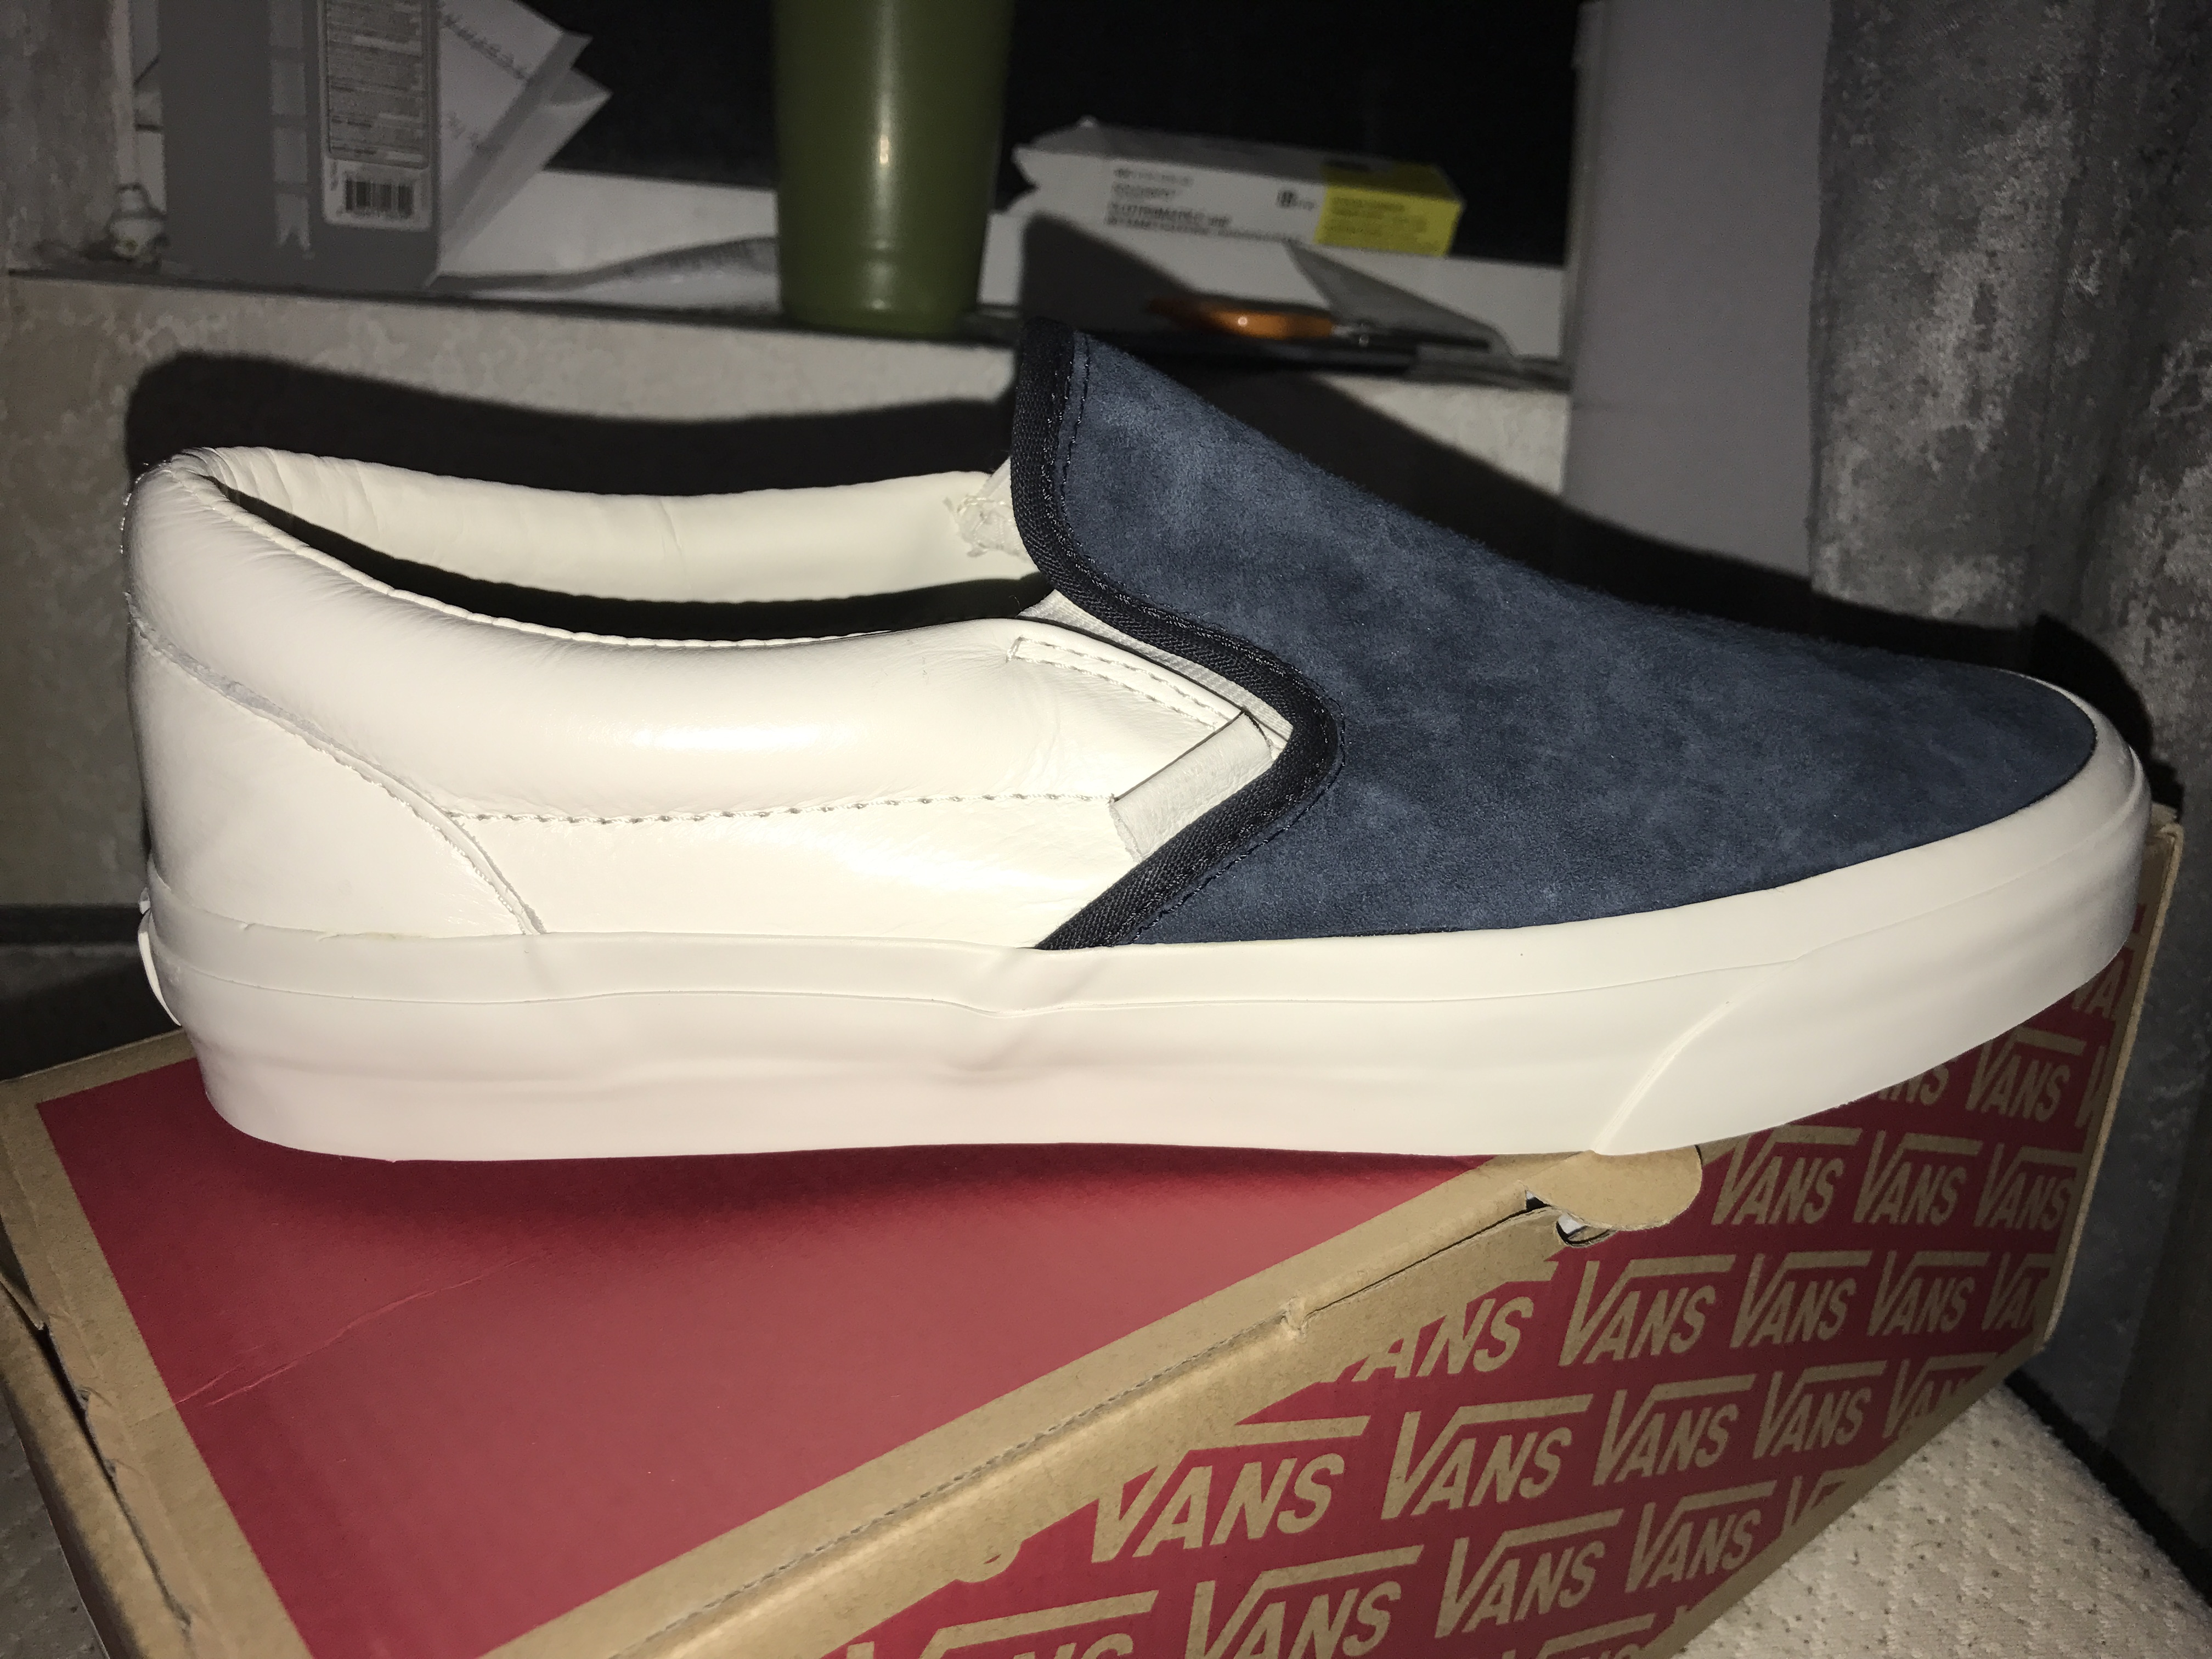 c7cd9c1802 Vans Vans California Slip-On Scotchgard Blue Graphite Suede ...